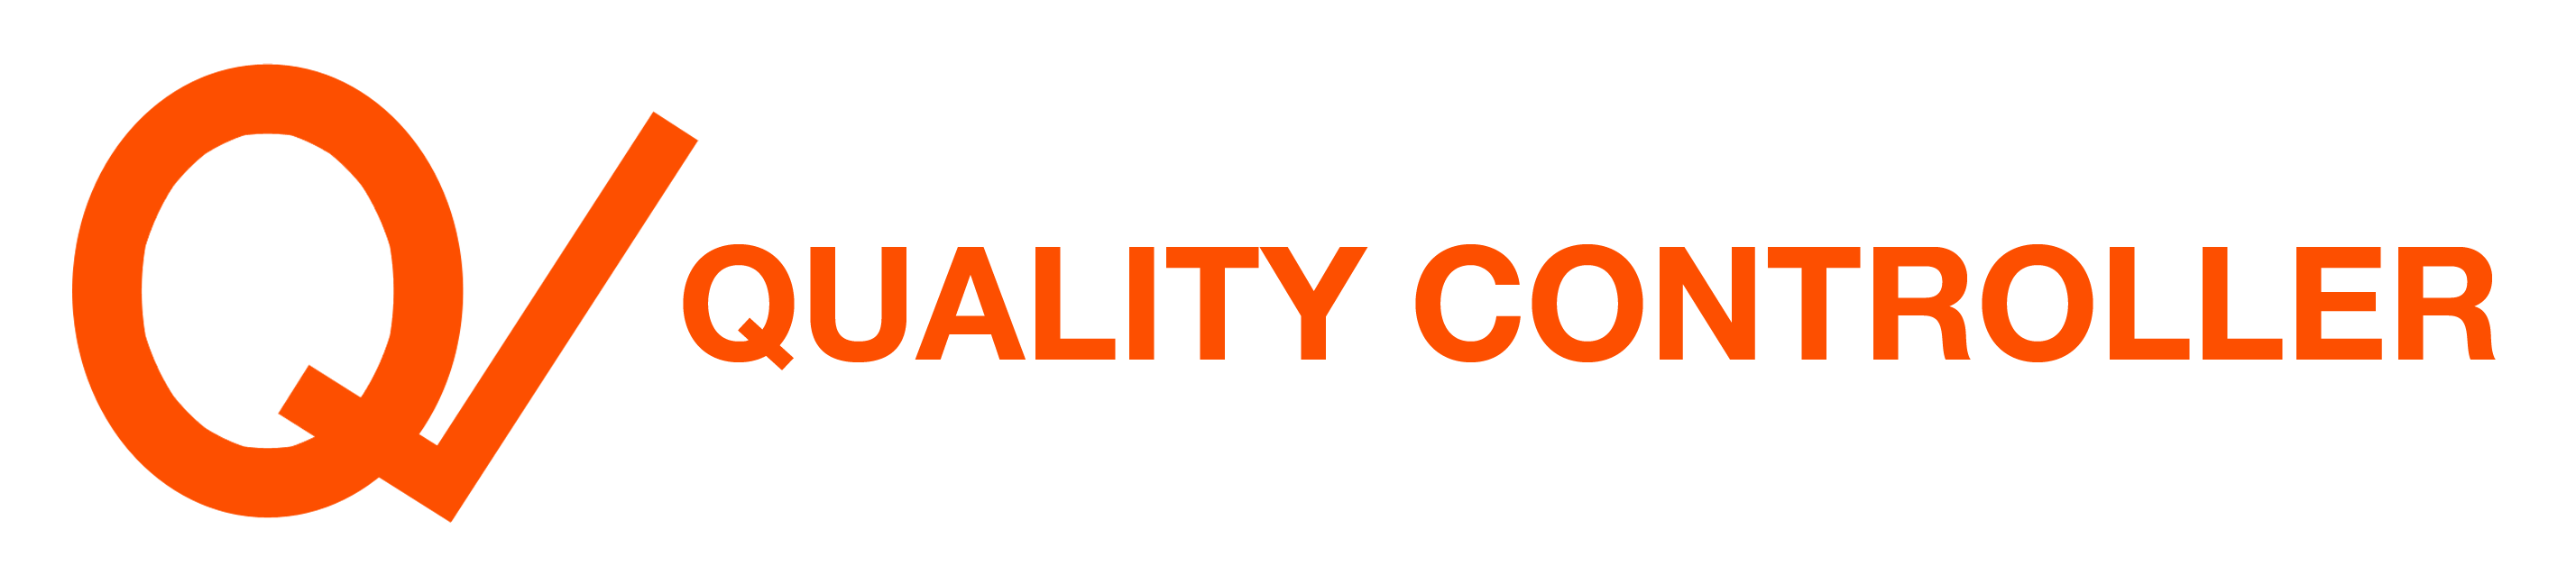 quality controller - orange.png